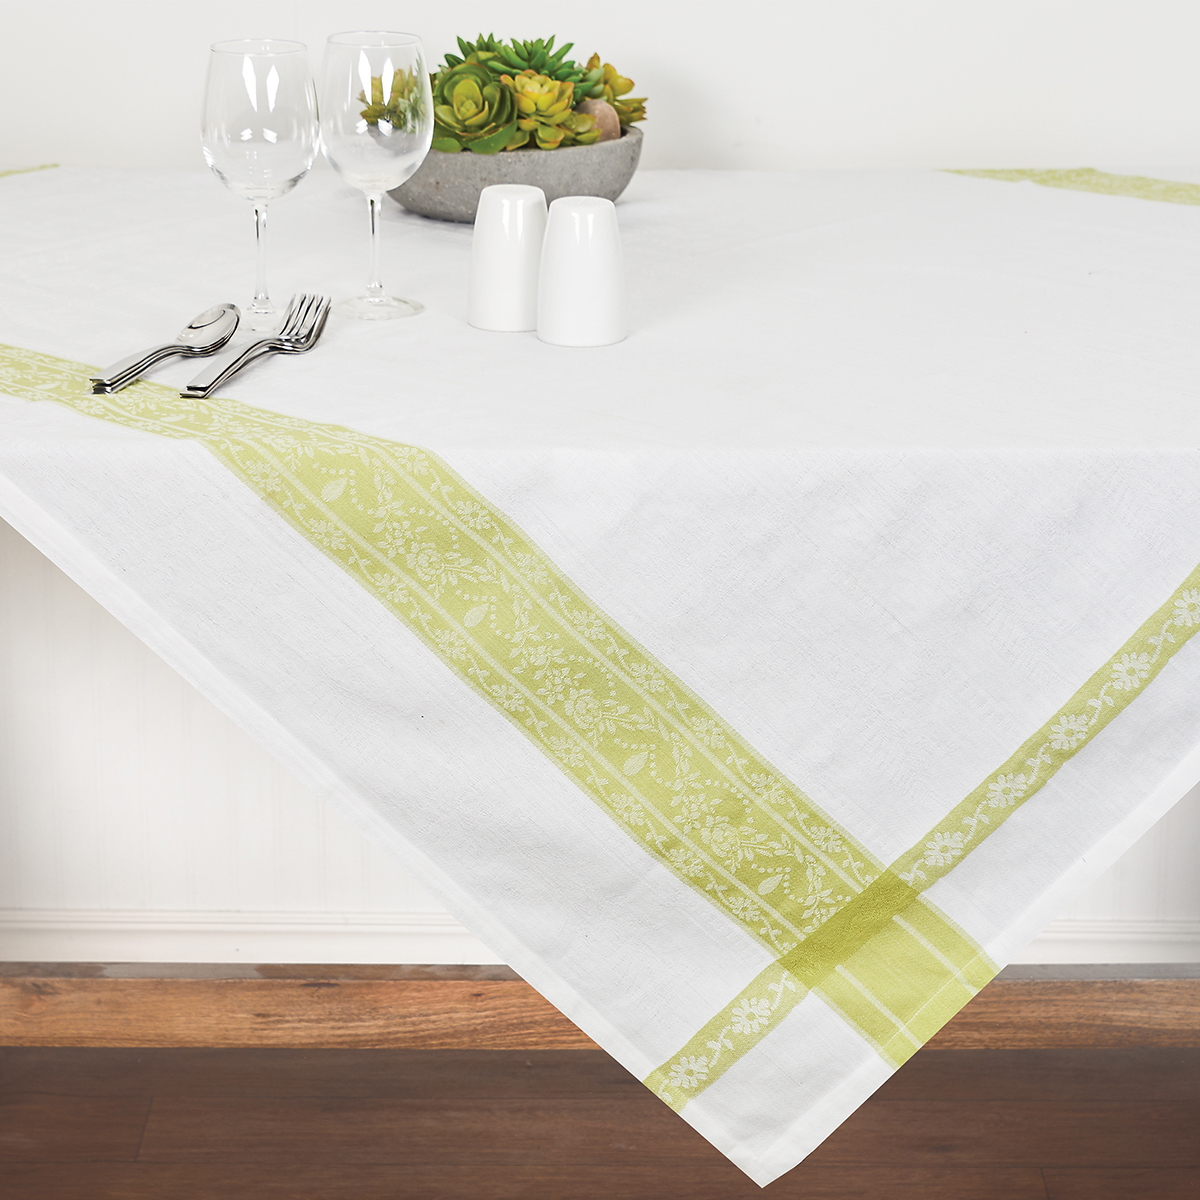 tabletop_everyday_tablecloths.jpg